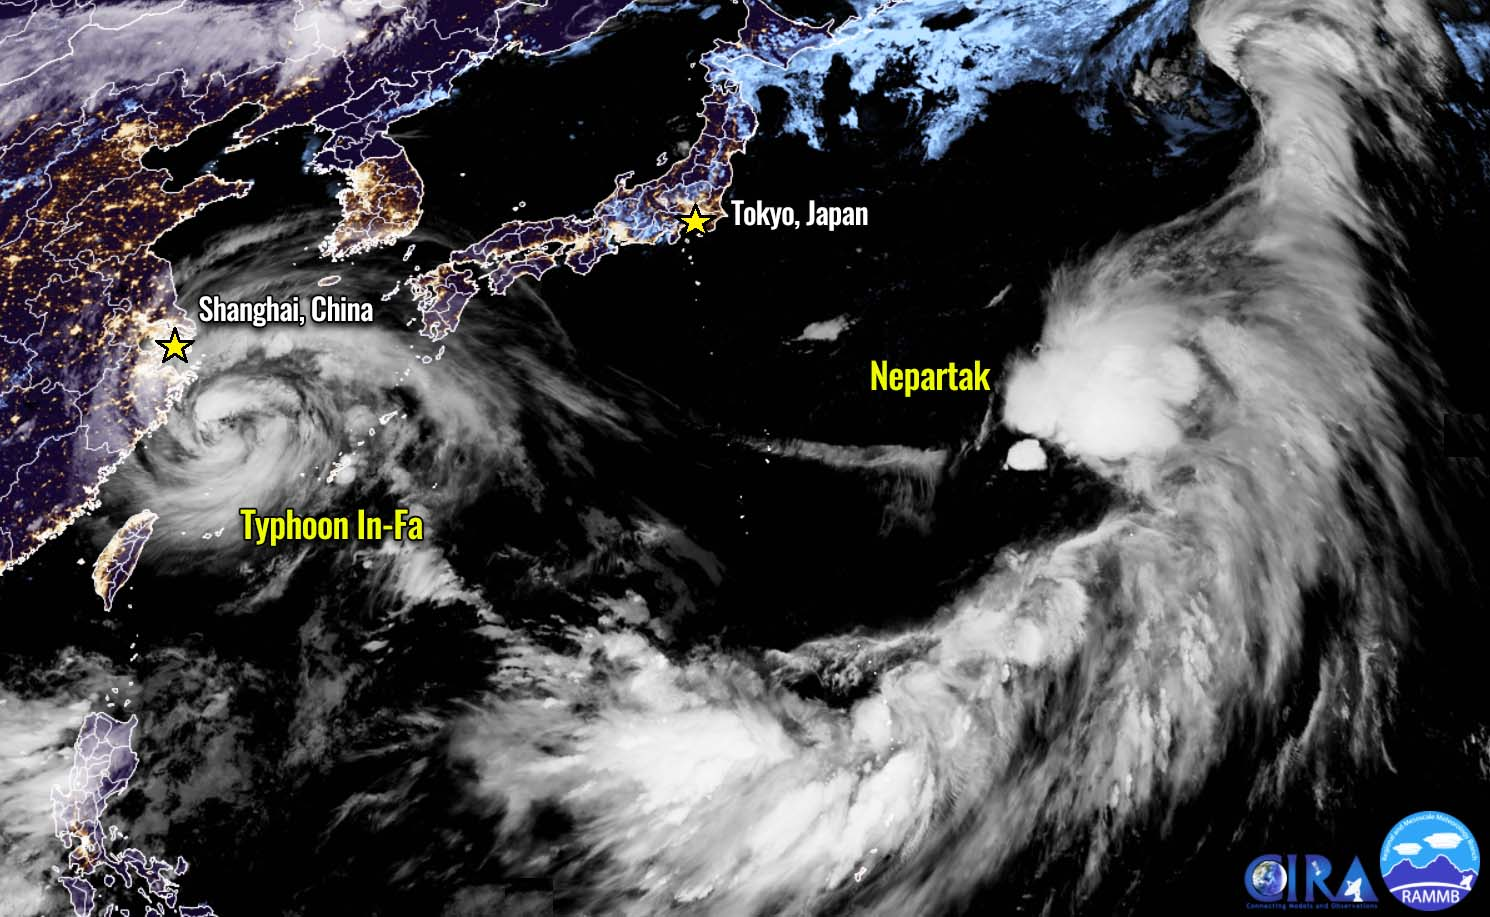 typhoon-in-fa-shanghai-catastrophic-floods-china-nepartak-japan-two-storms